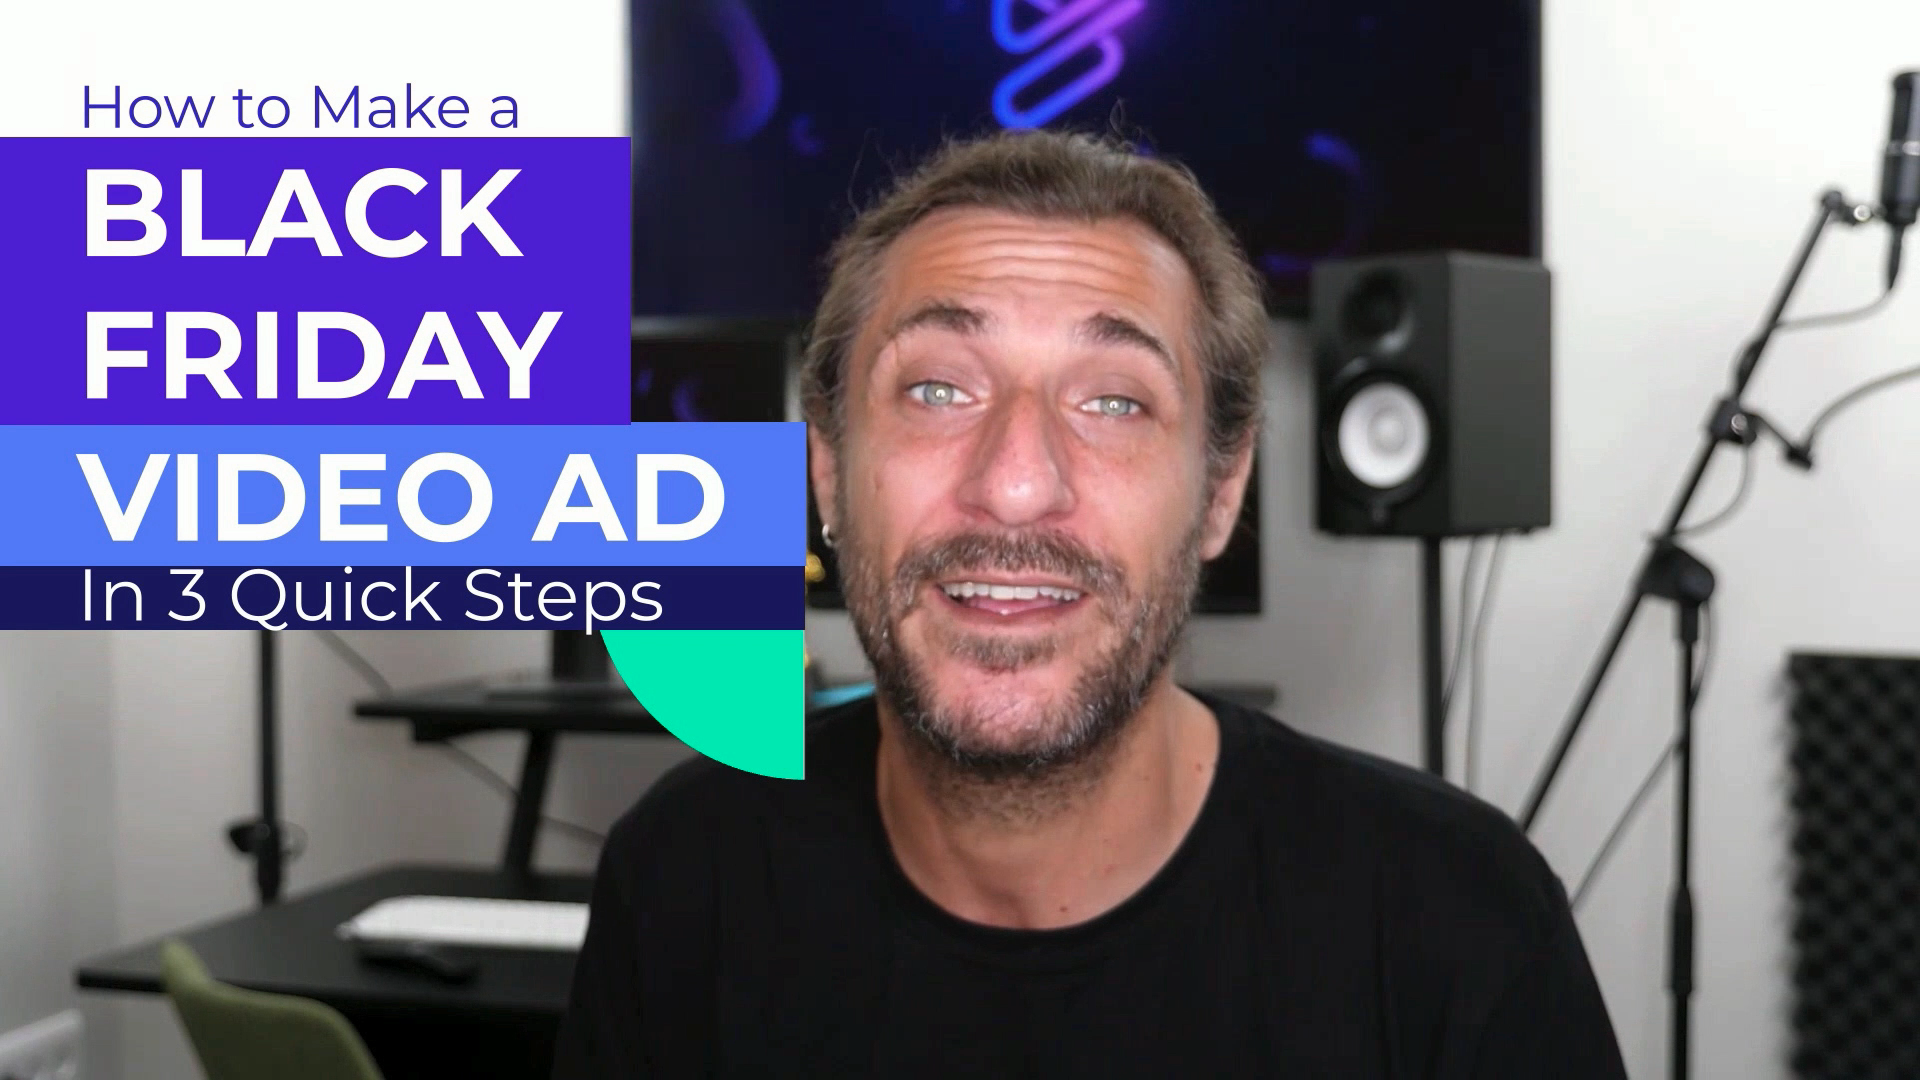 When is black Friday and how to create the best Black Friday video ad for your business.